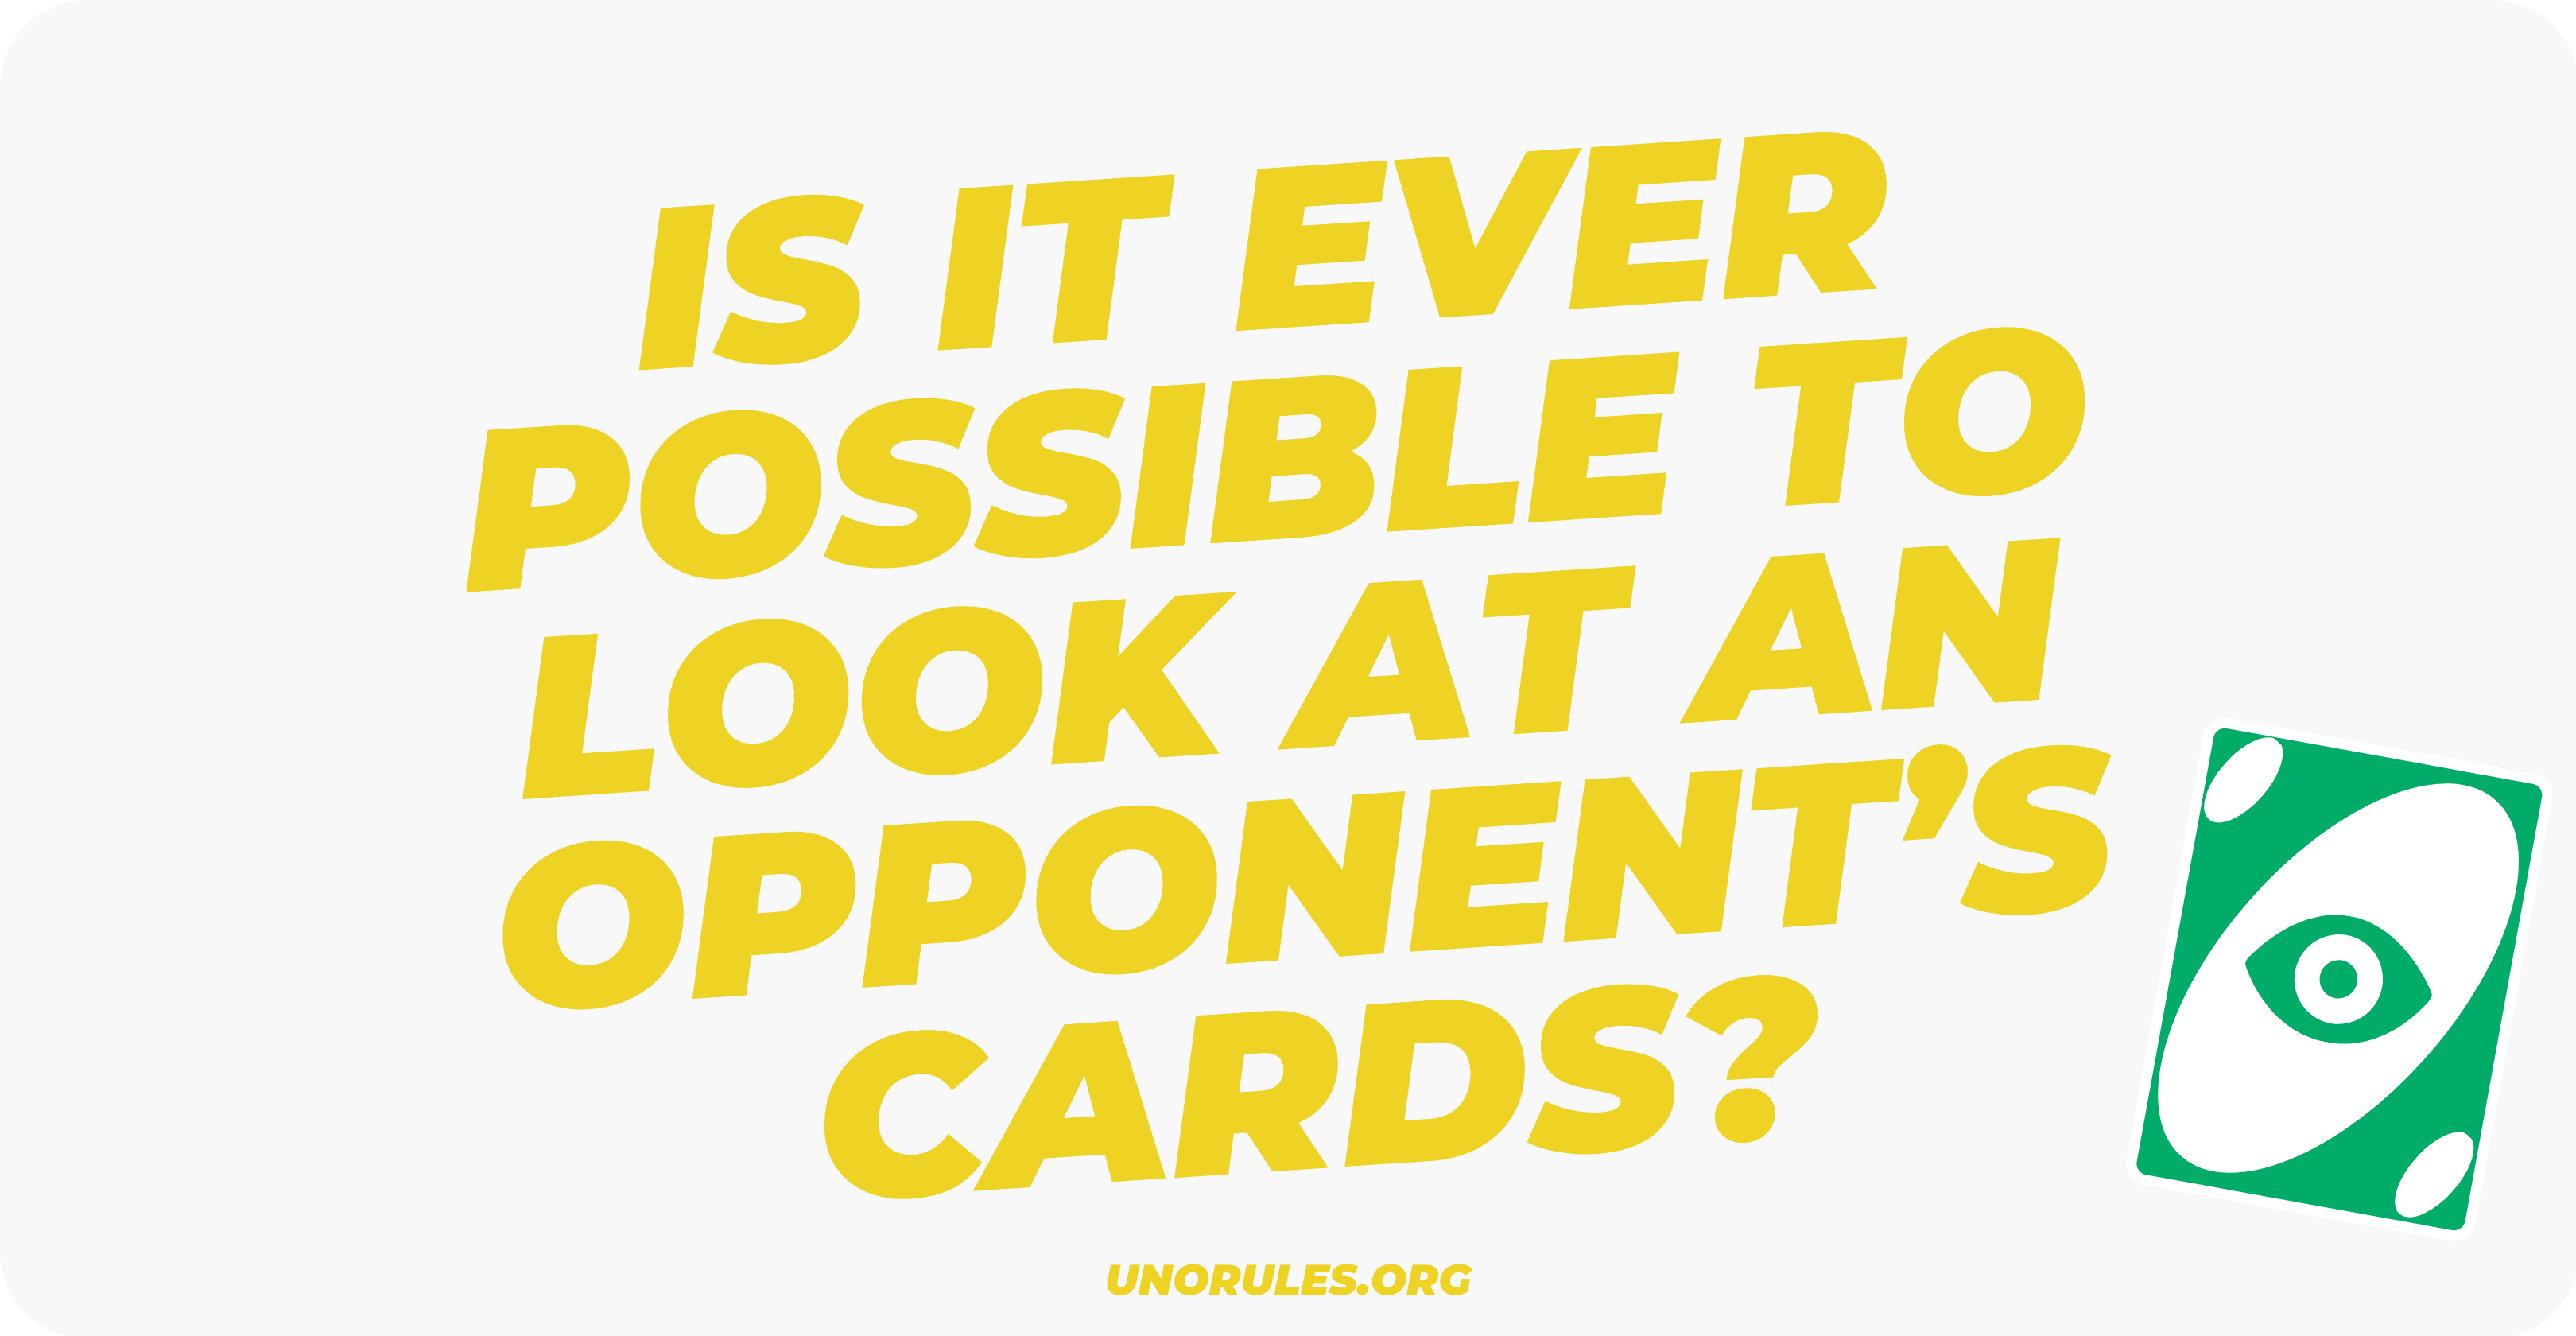 Is it ever possible to look at an opponent's cards